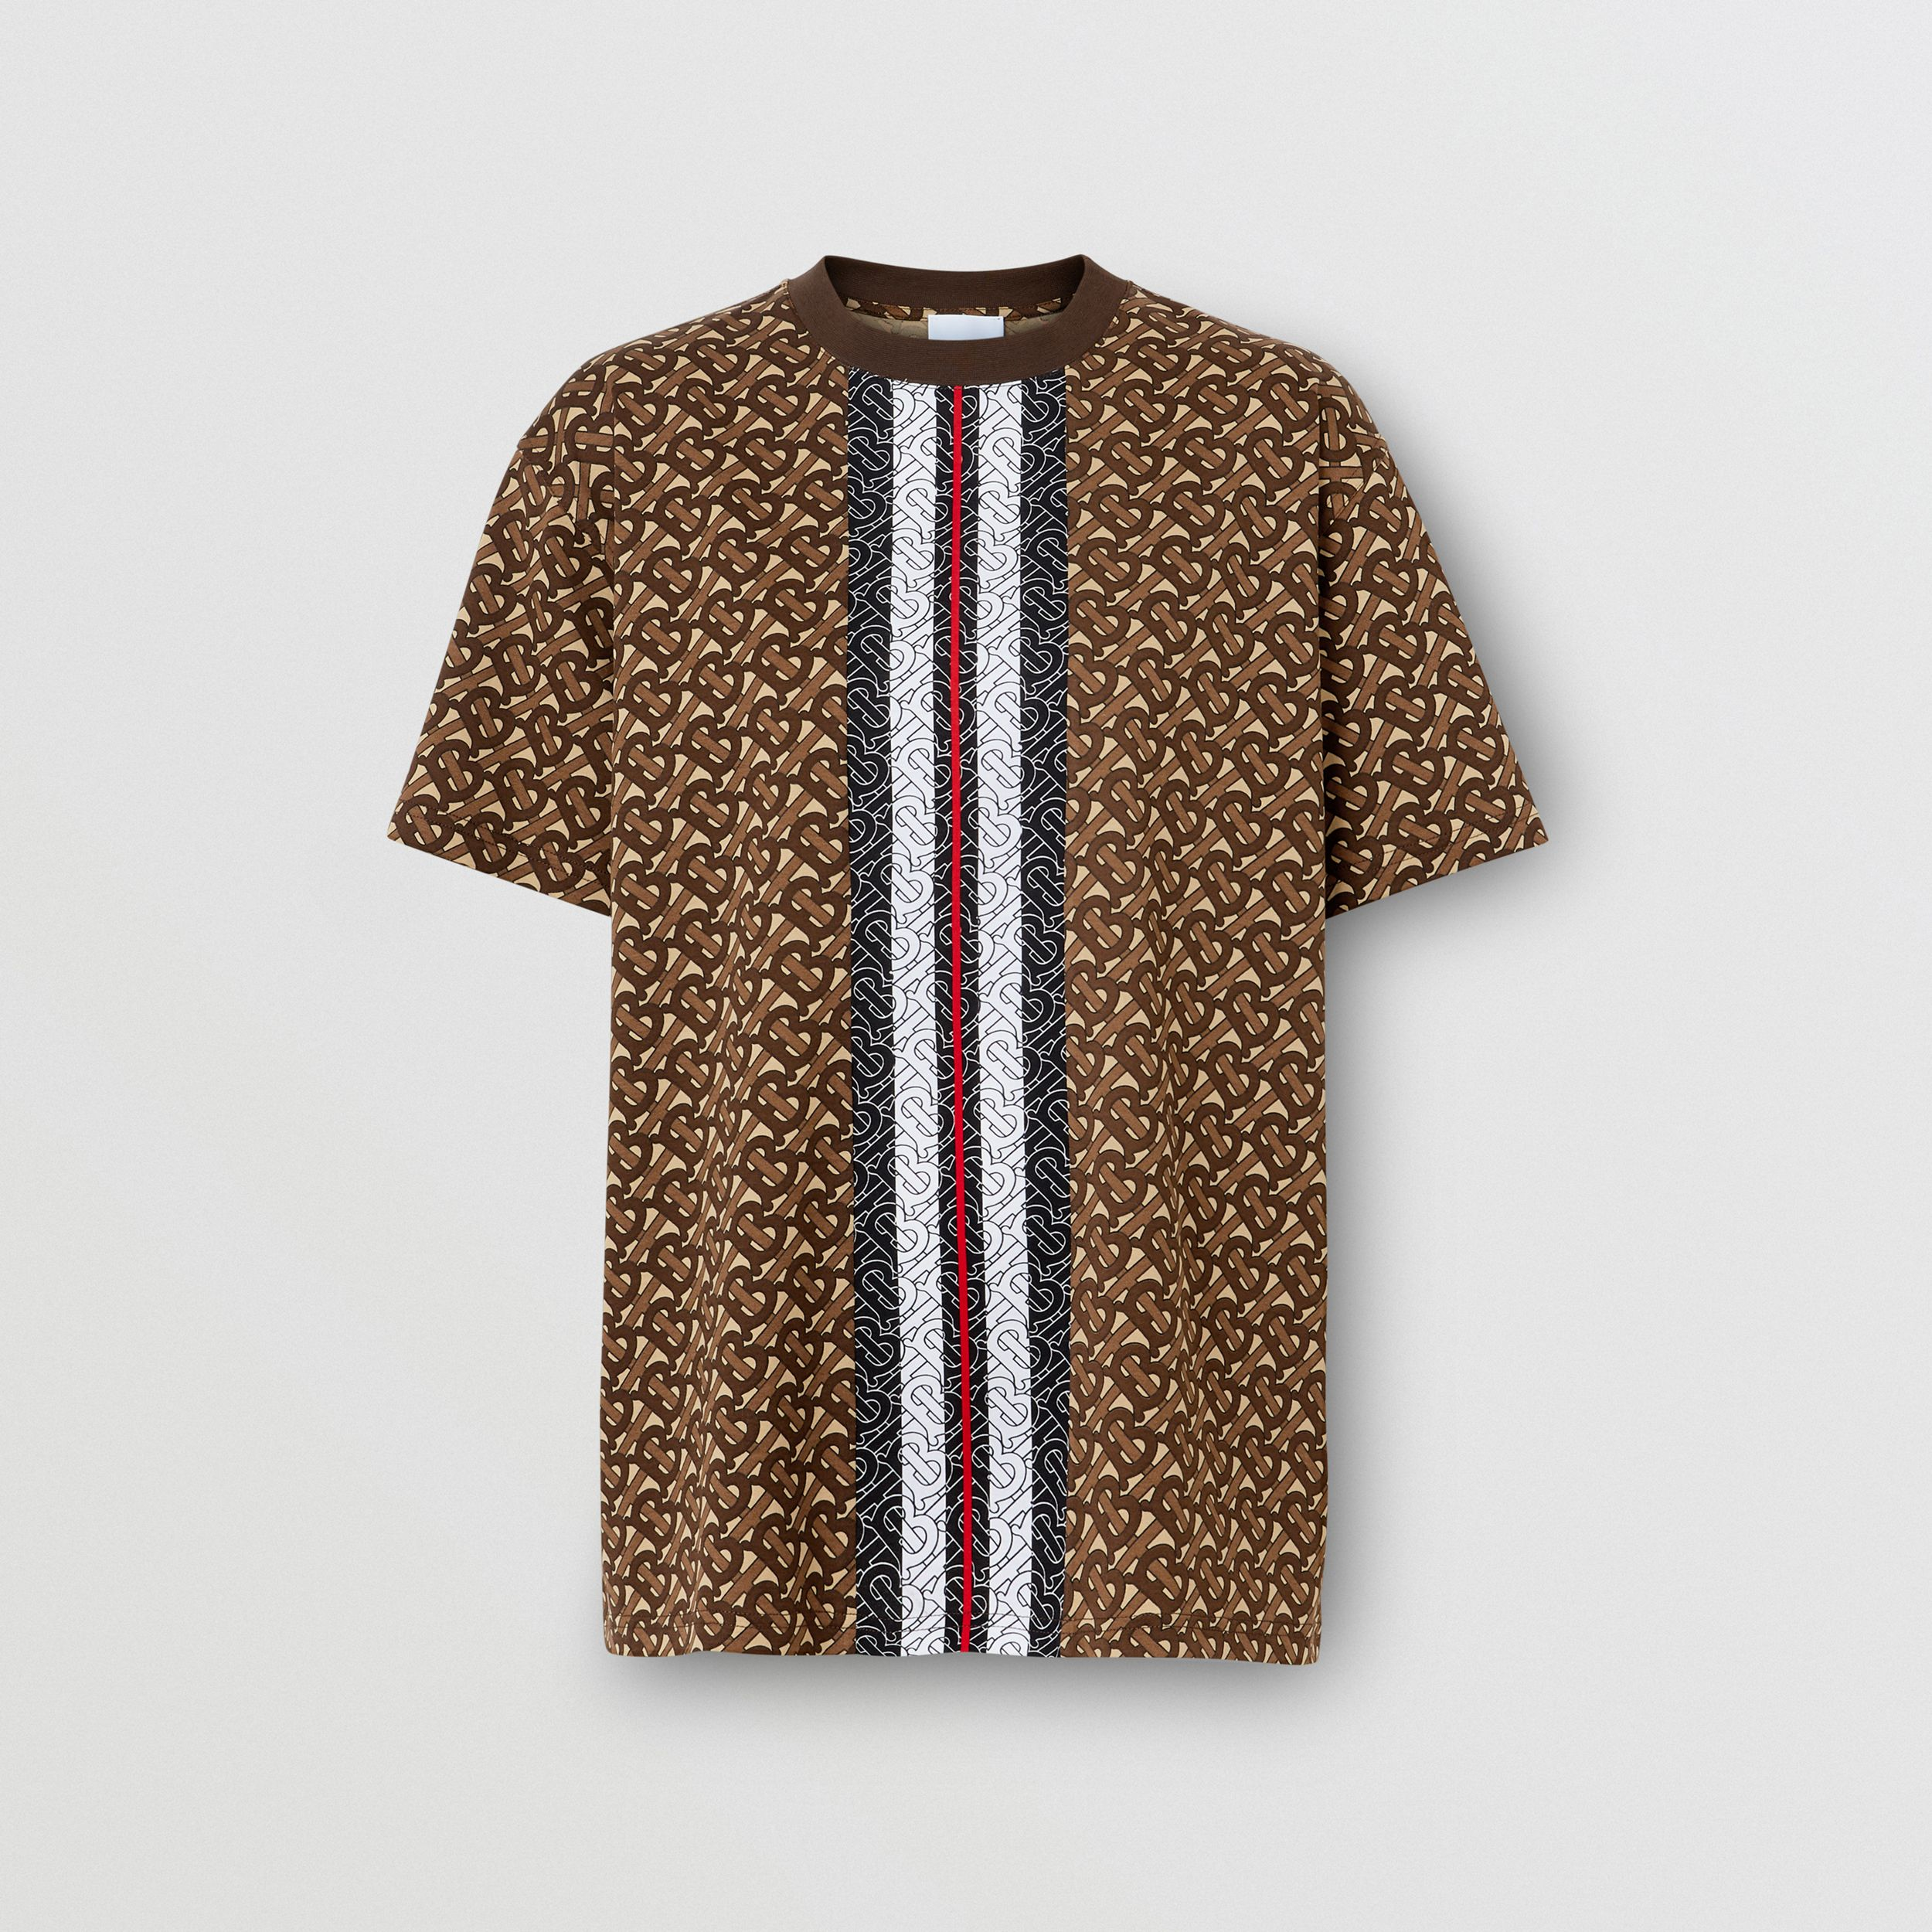 Monogram Stripe Print Cotton Oversized T-shirt in Bridle Brown - Women | Burberry - 4